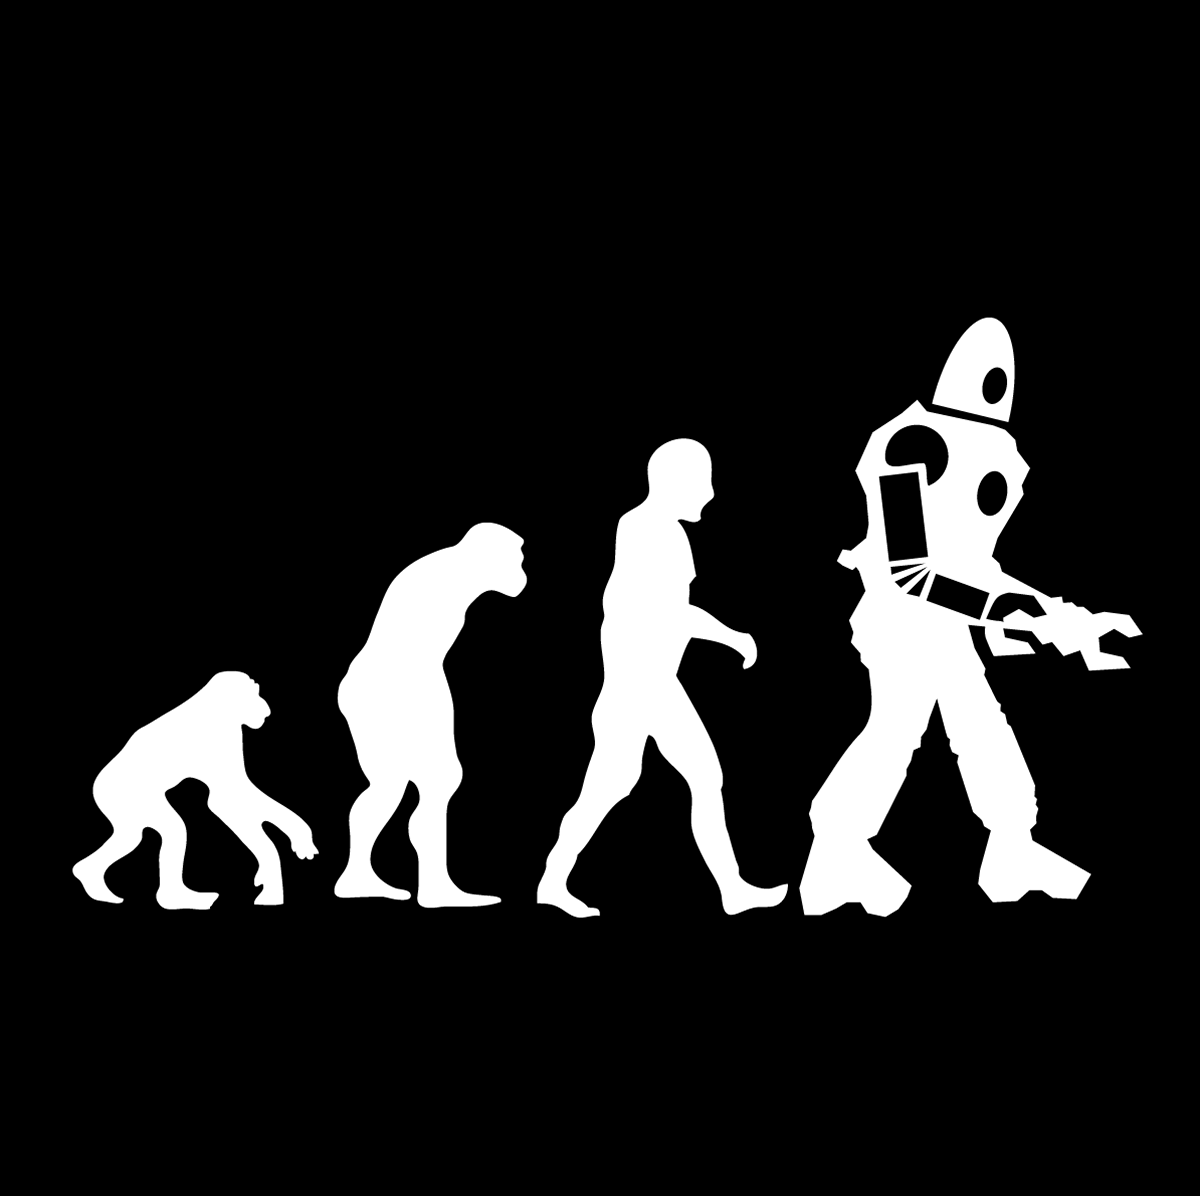 Shirt design mission tx - A Classic Evolution Diagram Except That The Final Stage Isn T Modern Man But Instead